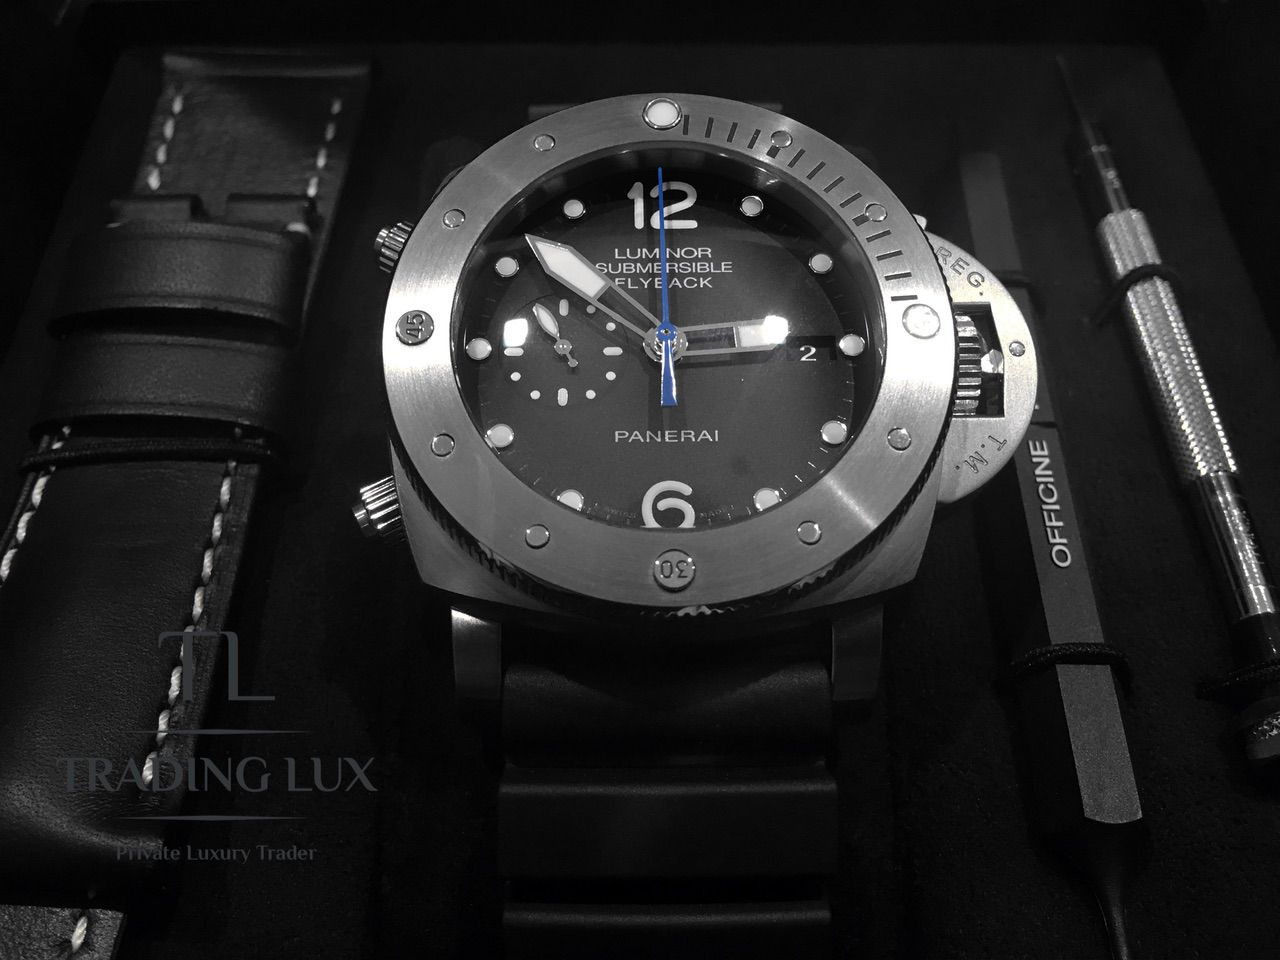 Panerai-Submersible-Chrono-PAM00614-17